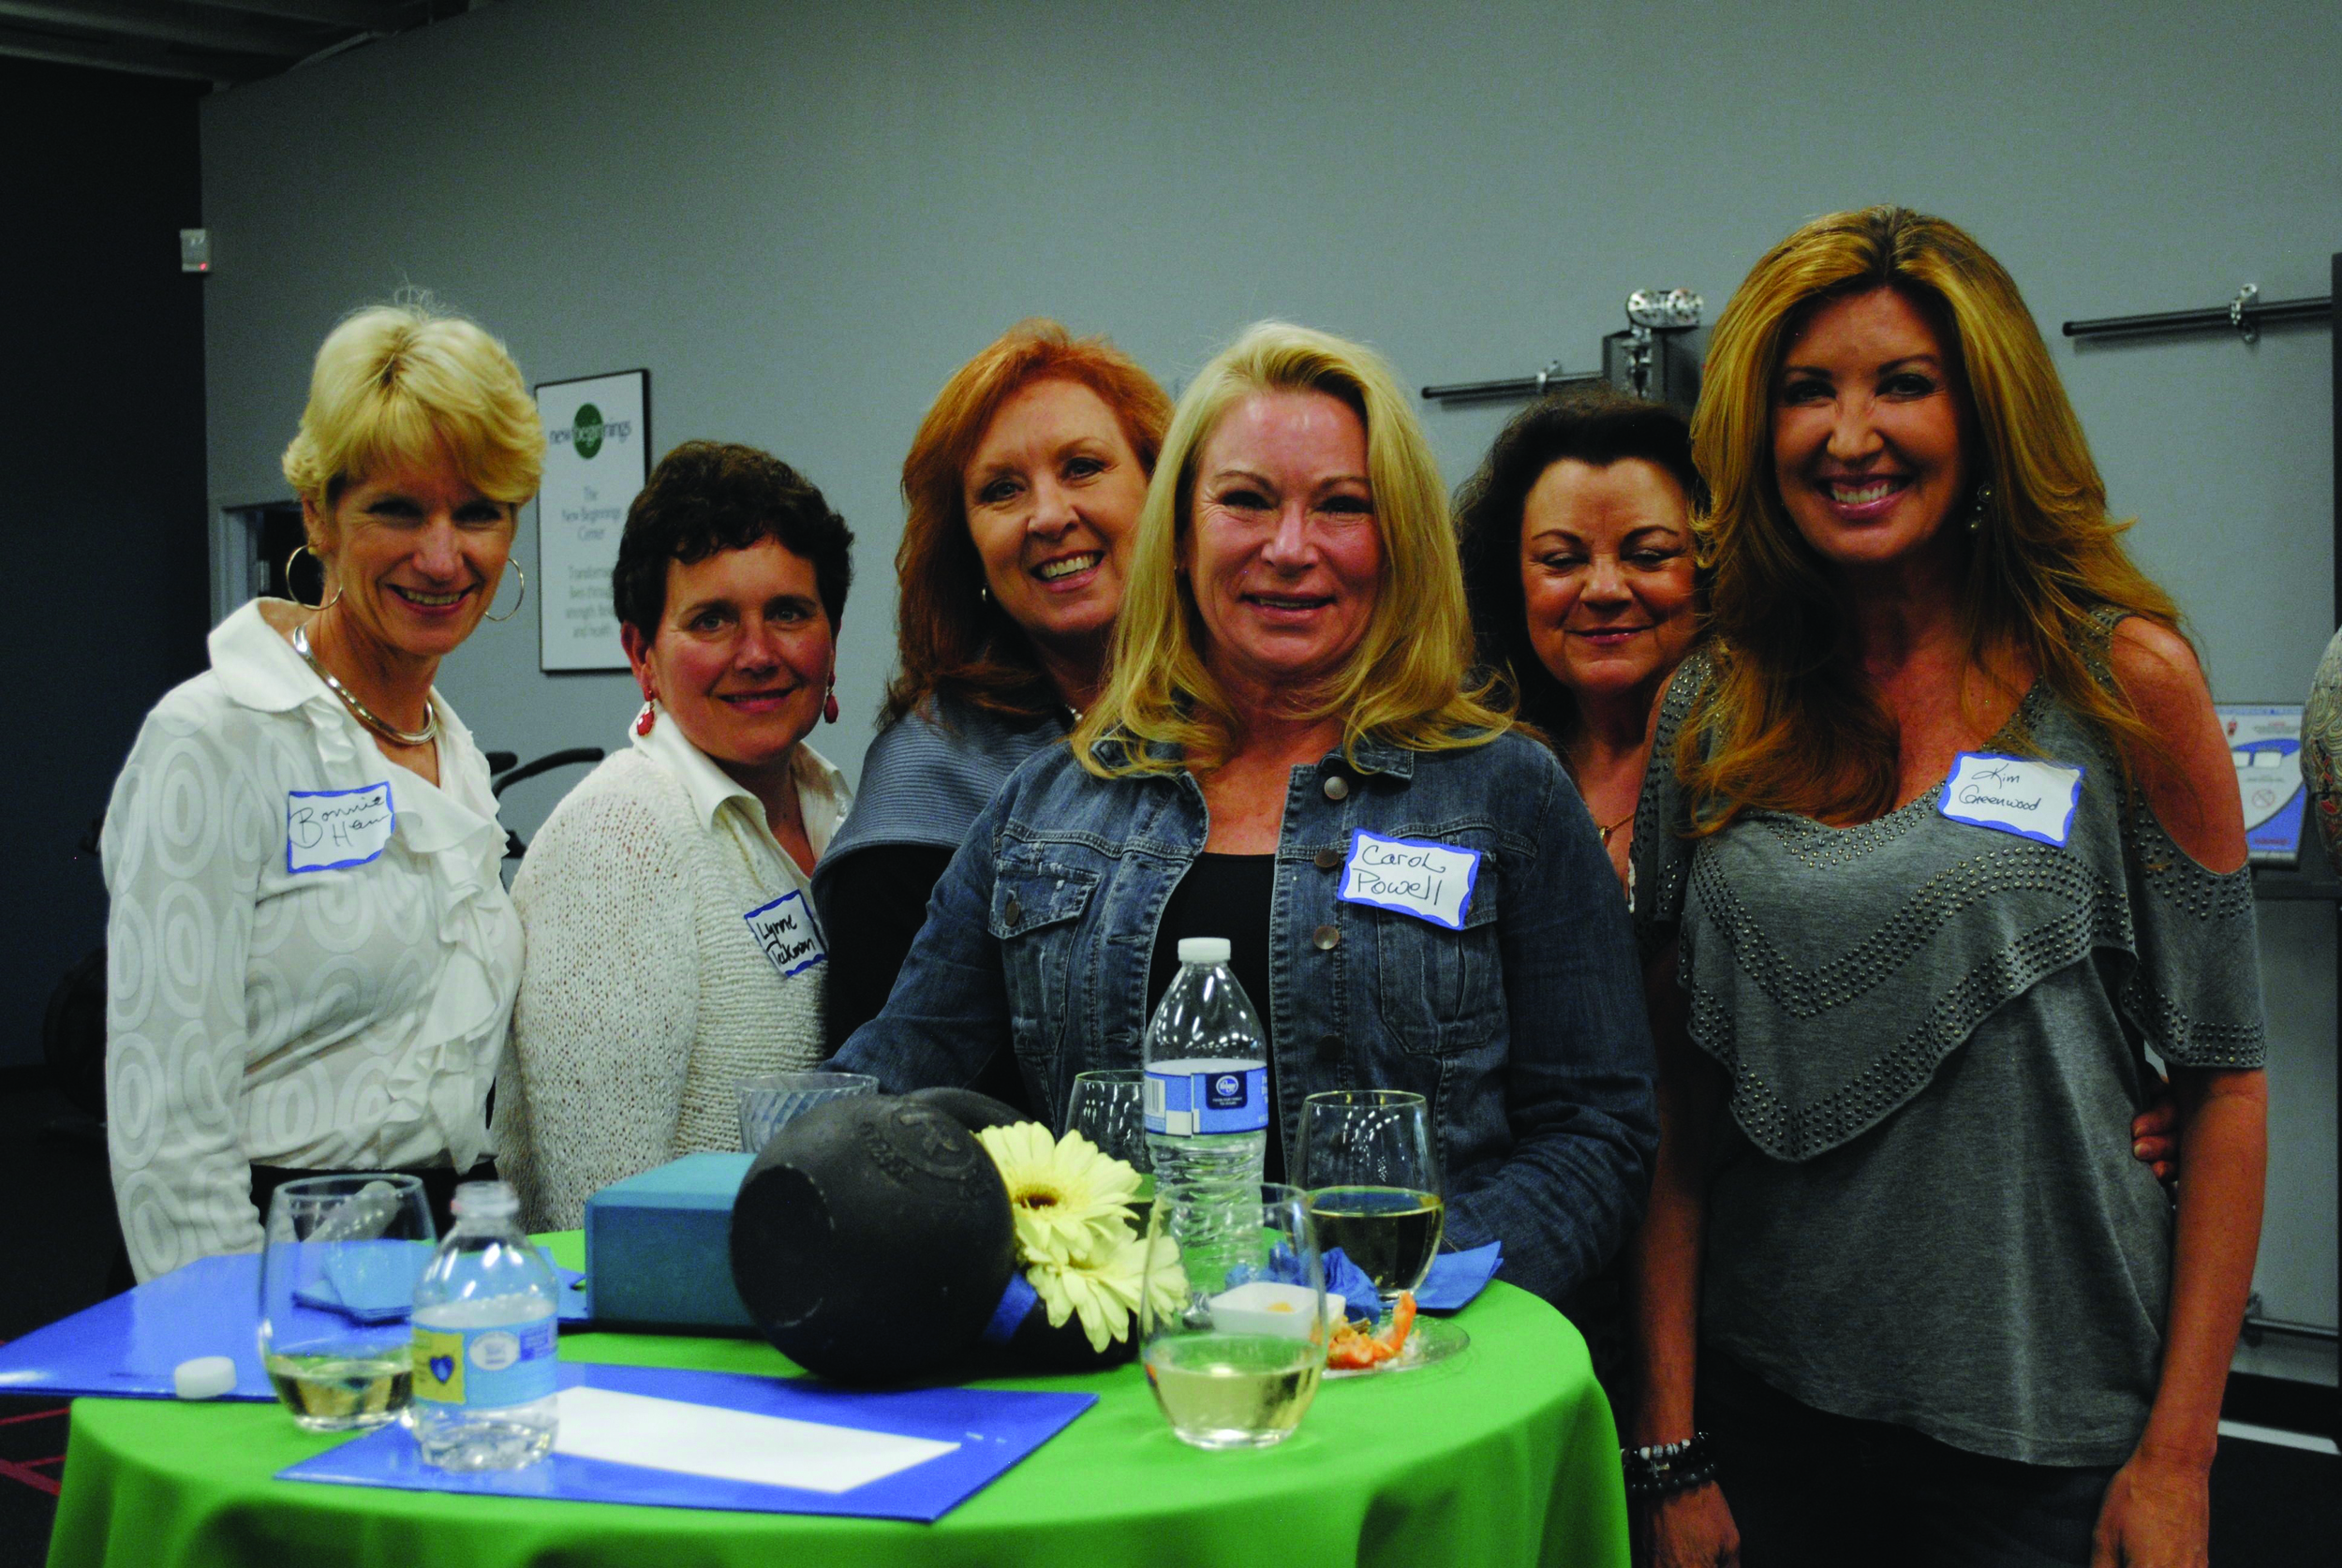 Bonnie Heim, Lynne Heckman, Lana Suiter, Carol Powell,  Sharon Piper and Kim Greenwood